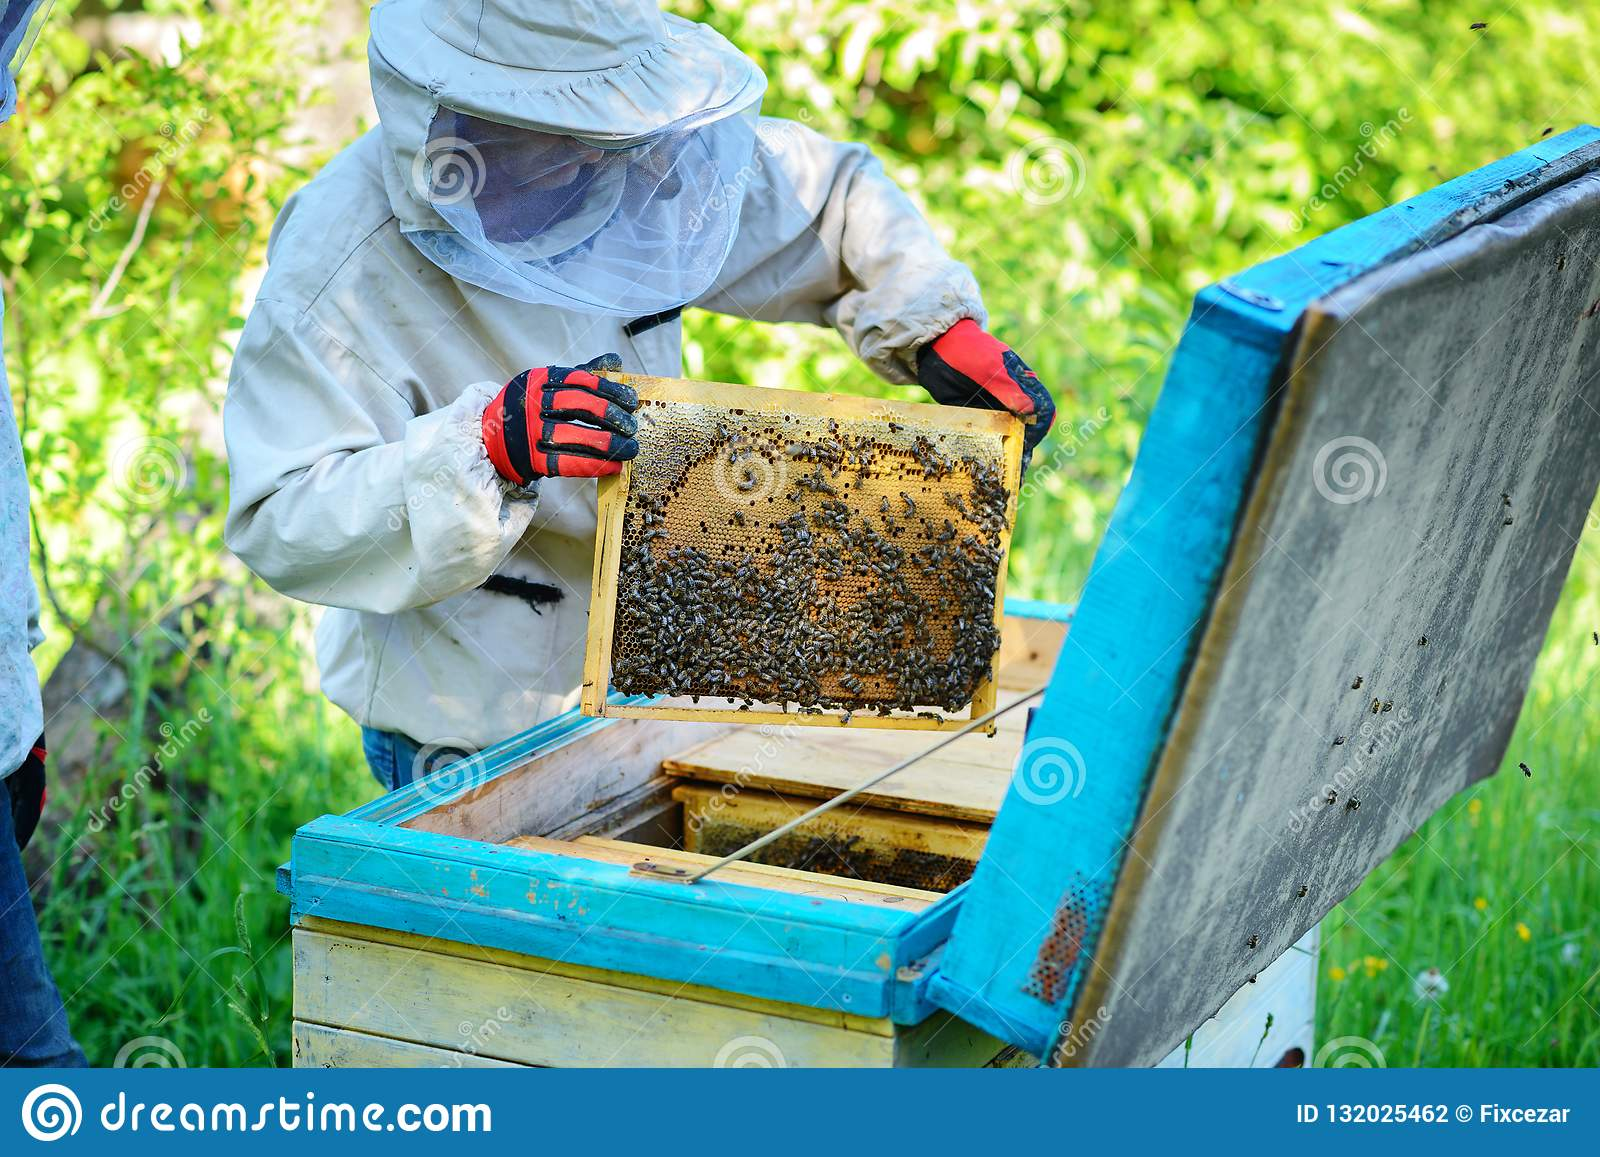 apiary-beekeeper-works-bees-near-hives-1